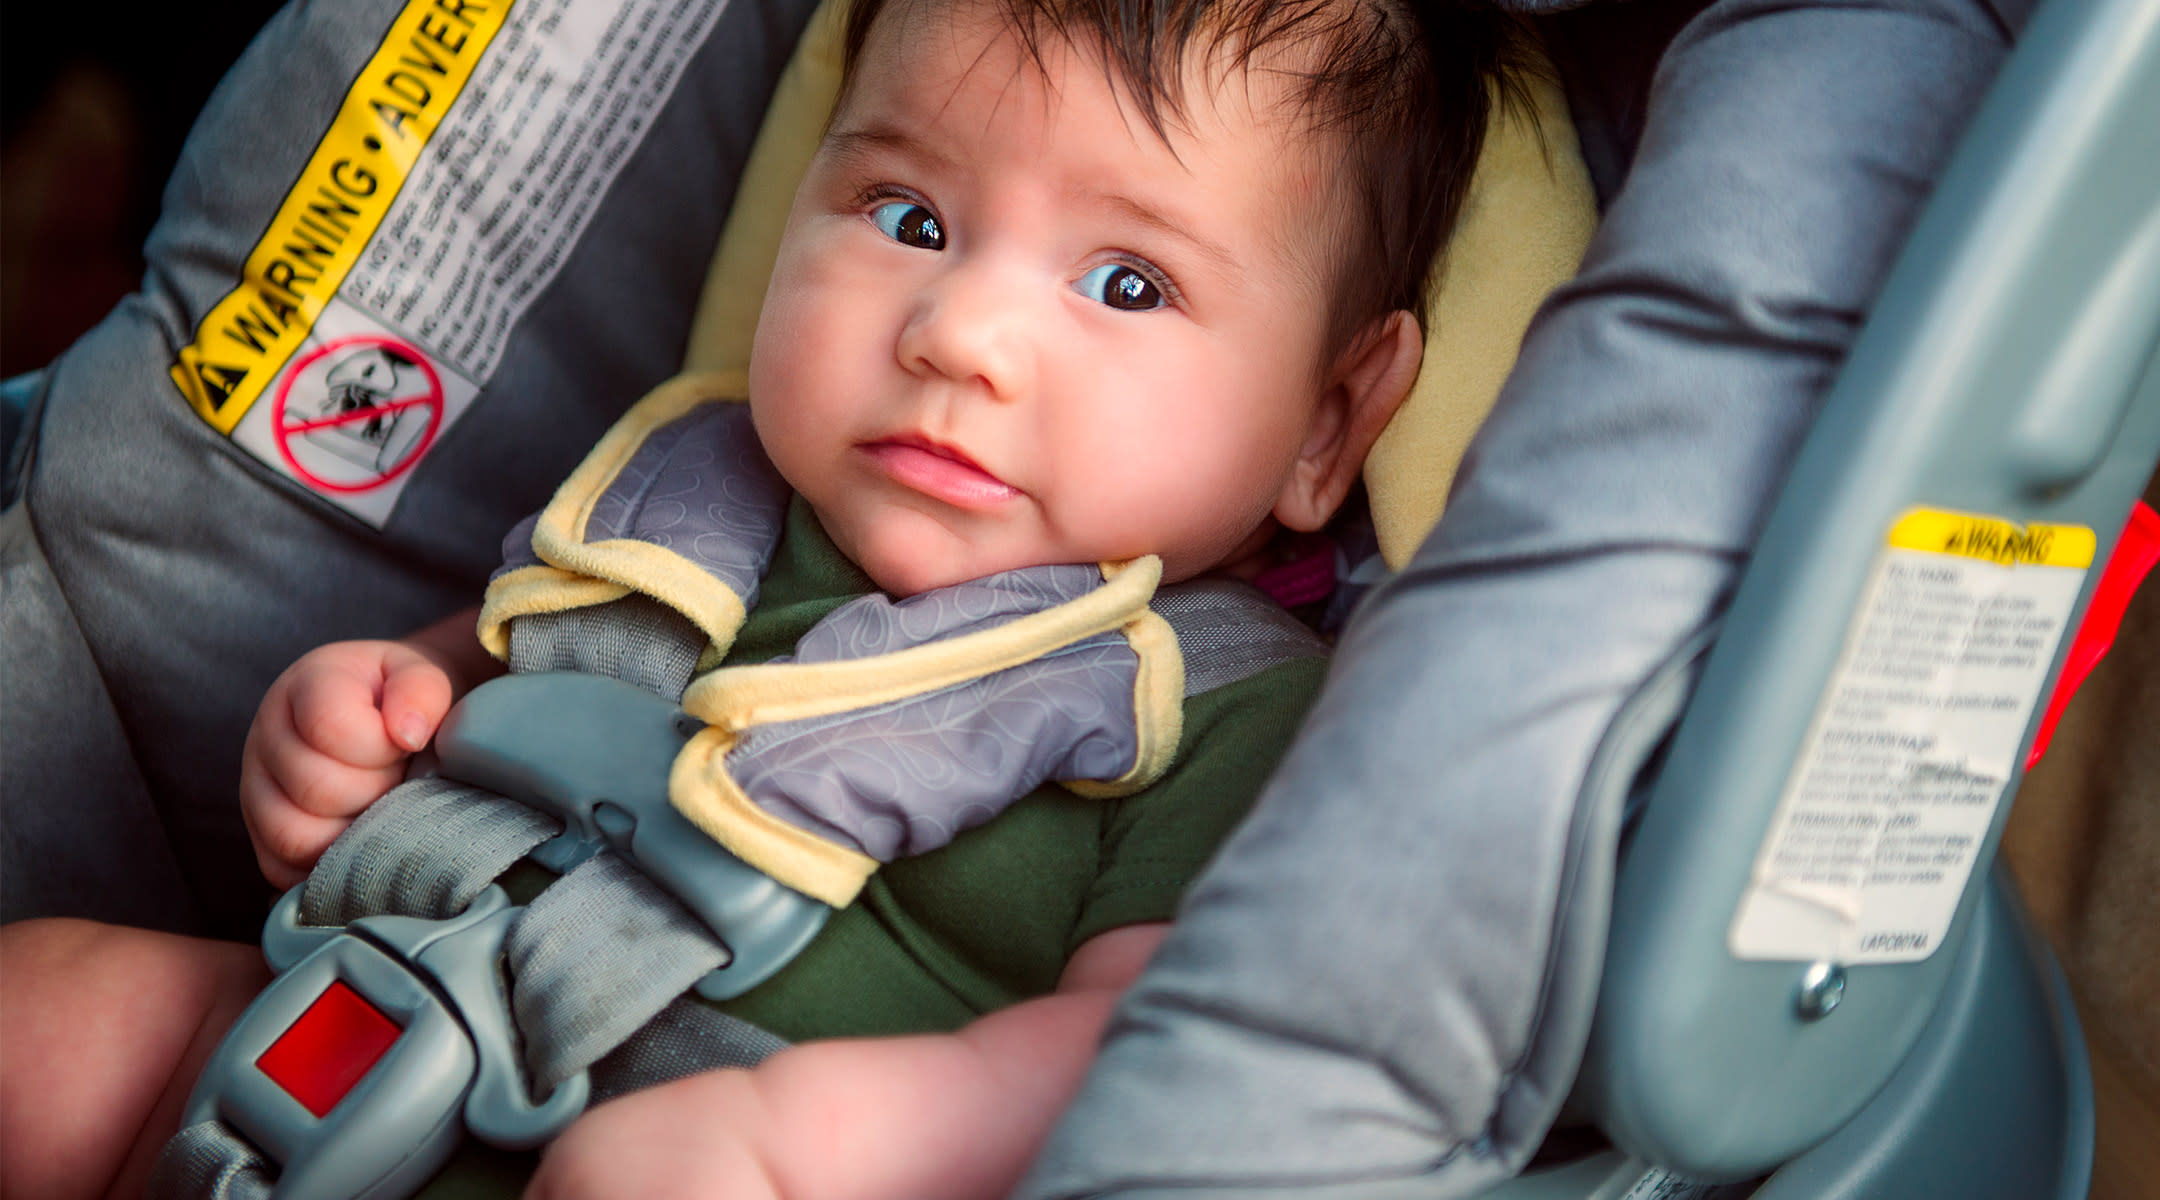 Marvelous Car Seat Safety Common Mistakes And How To Avoid Them Alphanode Cool Chair Designs And Ideas Alphanodeonline